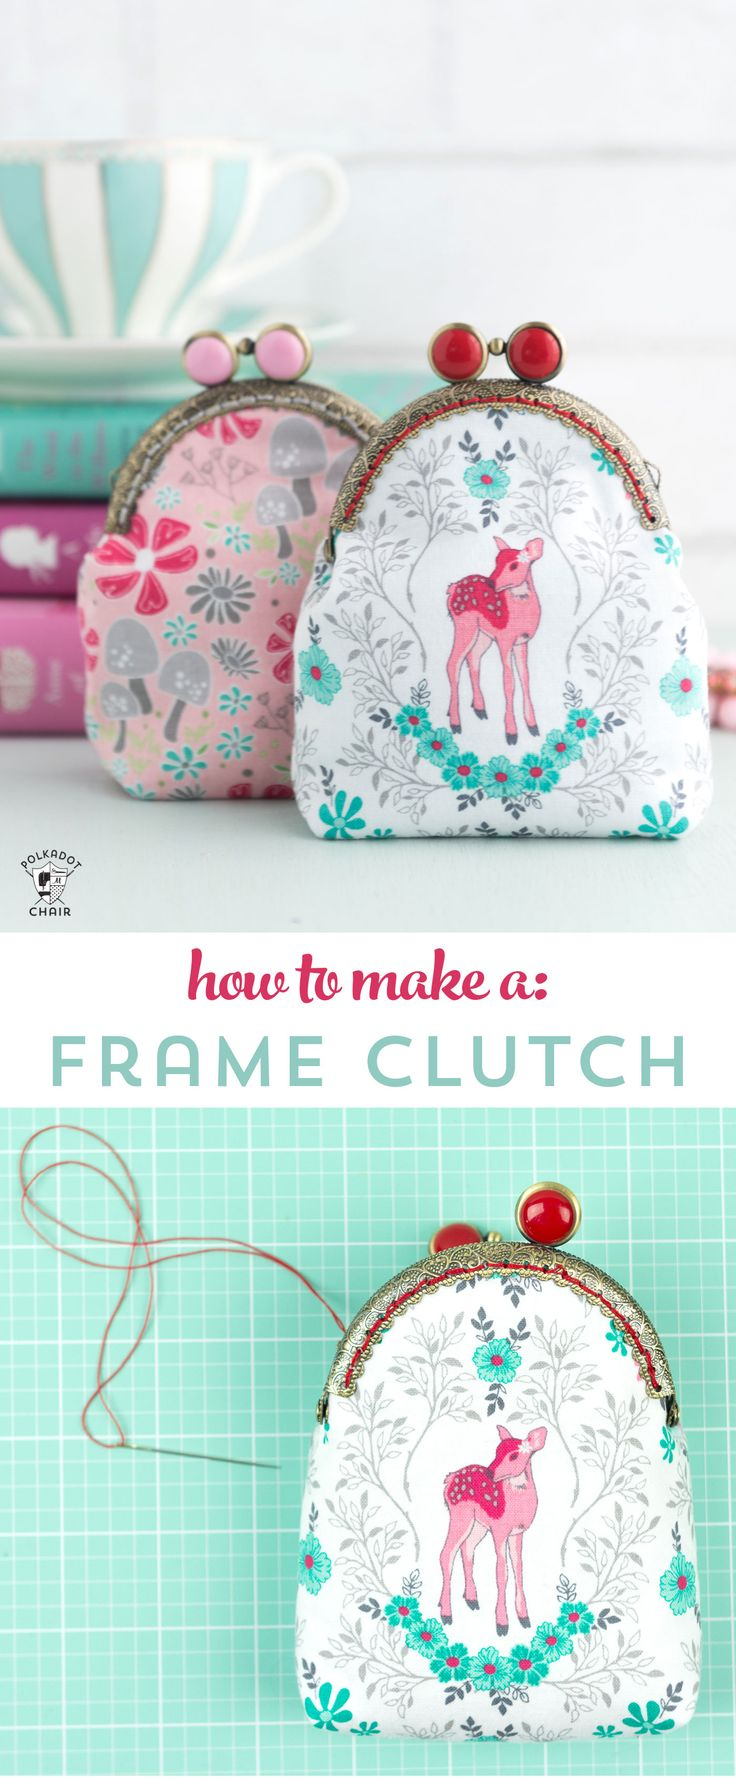 Learn how to draft a custom pattern for a frame clutch with this metal frame purse tutorial - how make a coin purse from a metal frame